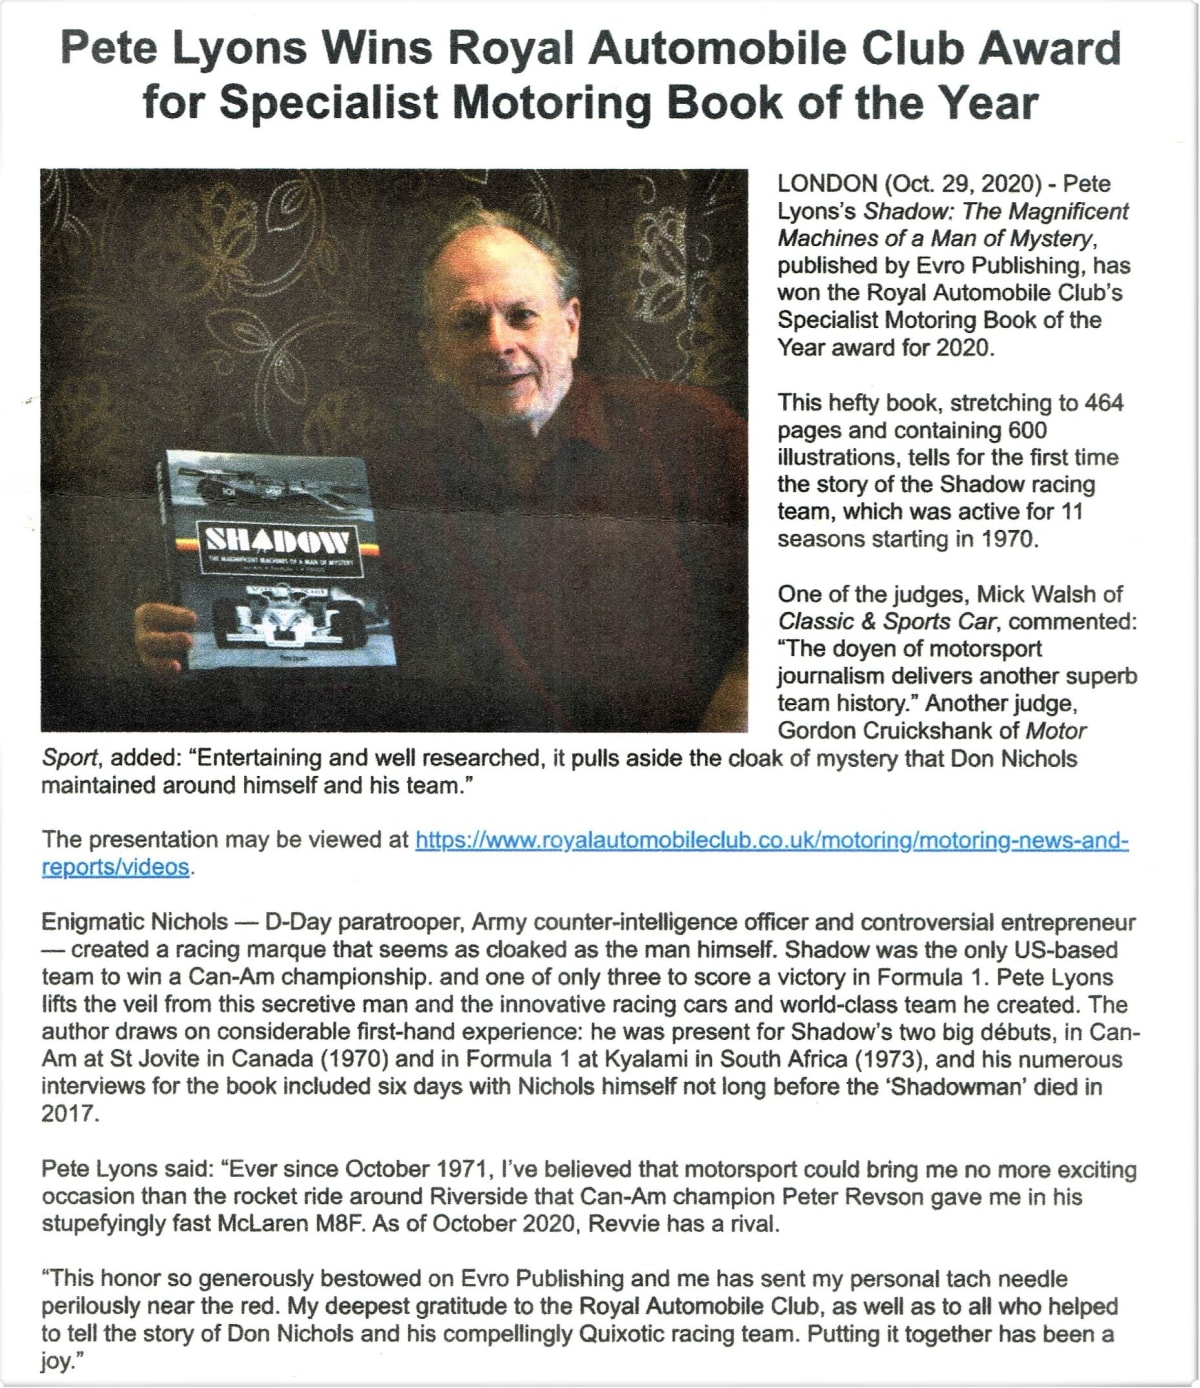 Pete Lyons wins Royal Automobile Club Award for Specialist Motoring Book of the Year